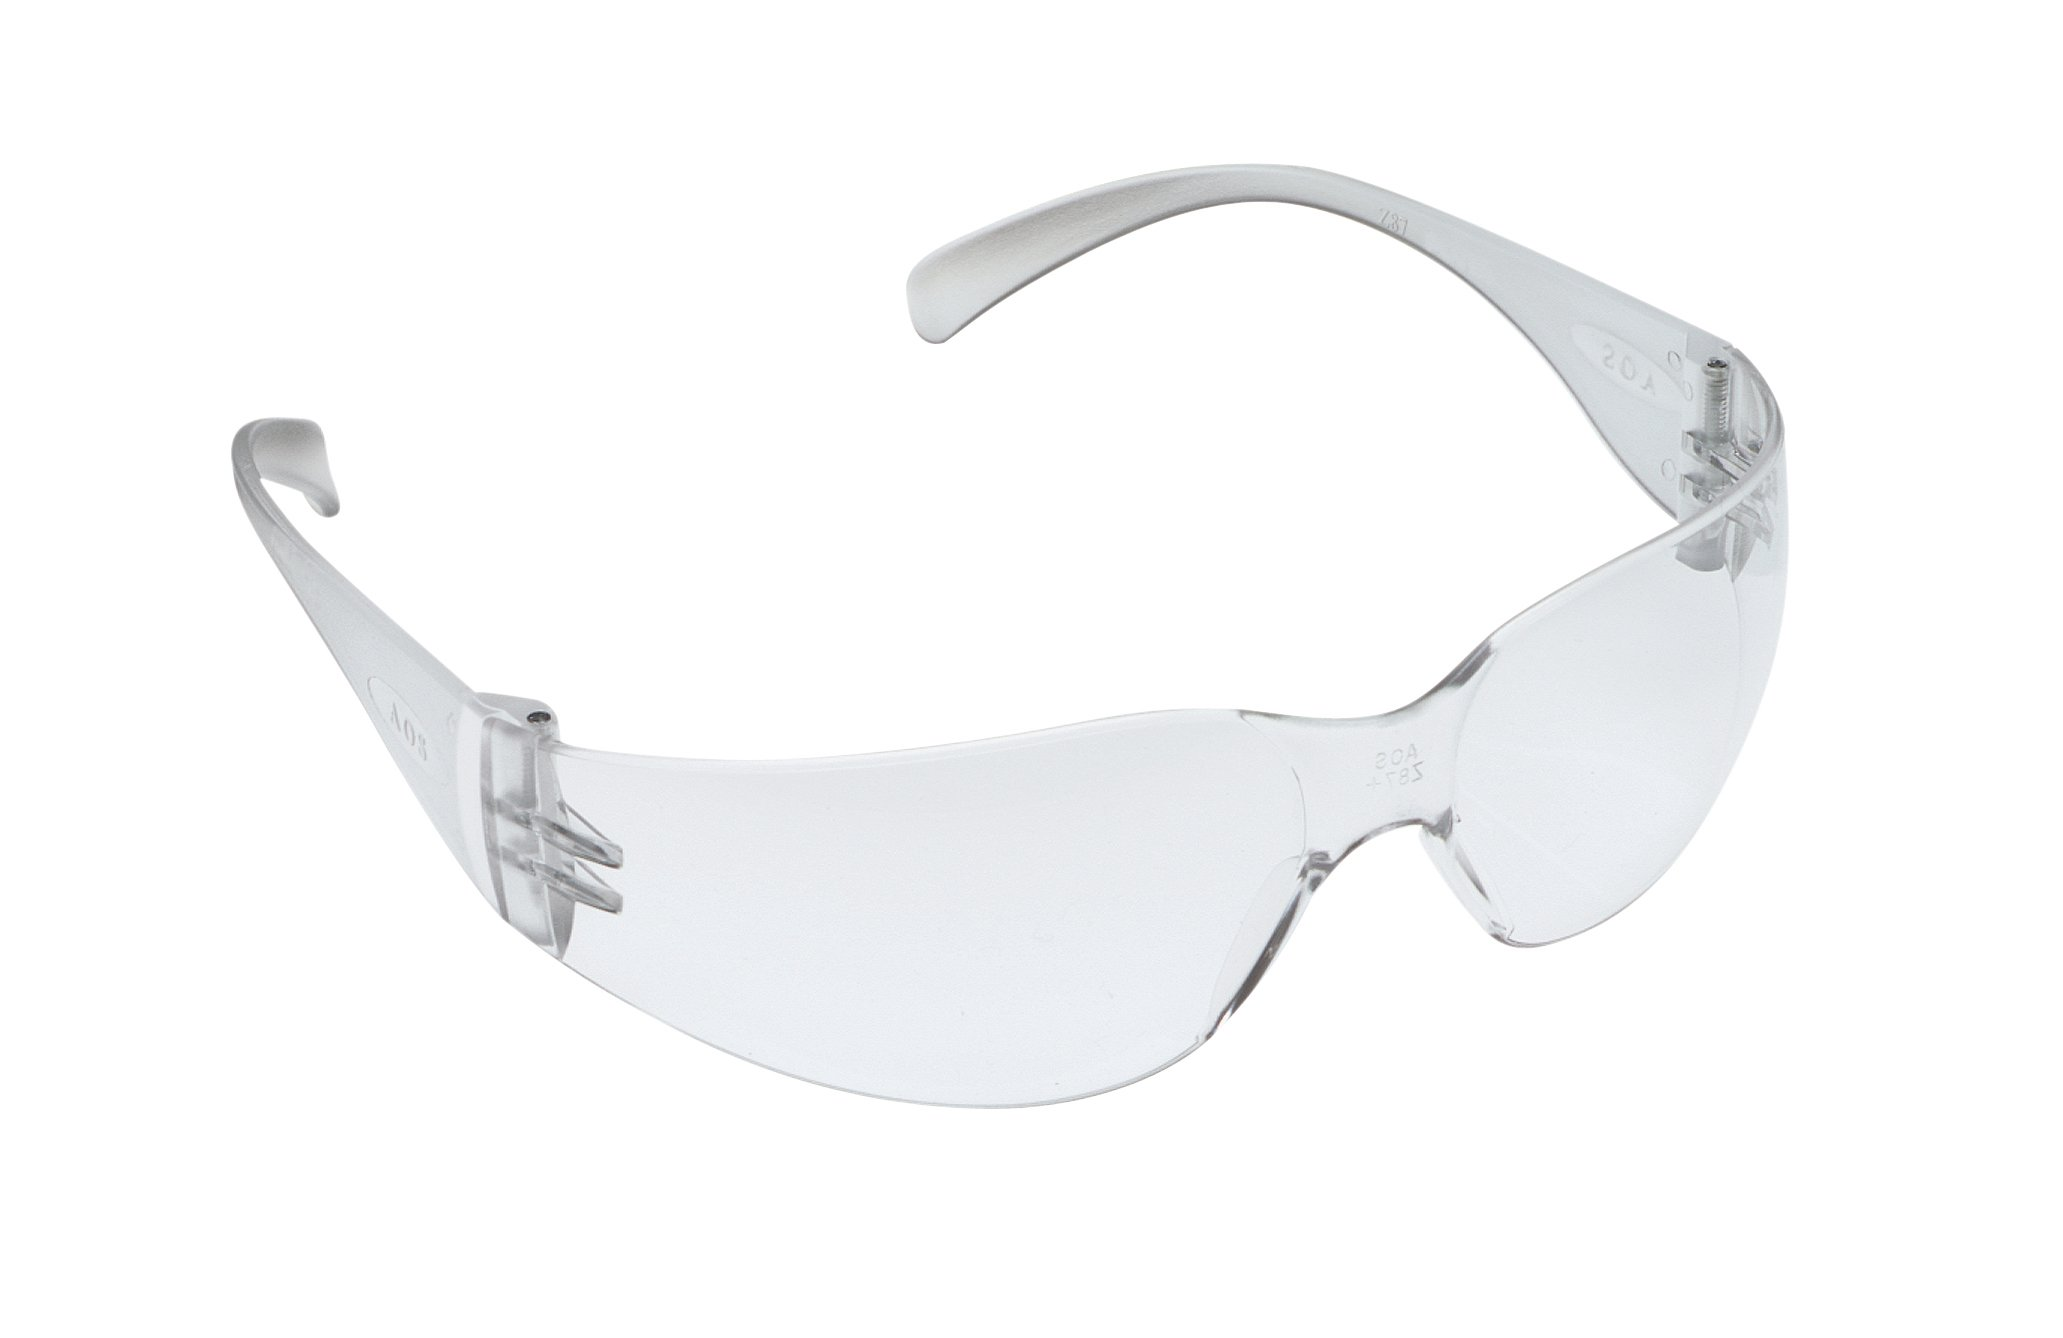 3M Virtua Protective Eyewear, 11329-00000-20 Clear Anti-Fog Lens, Clear Temple (Pack of 20)